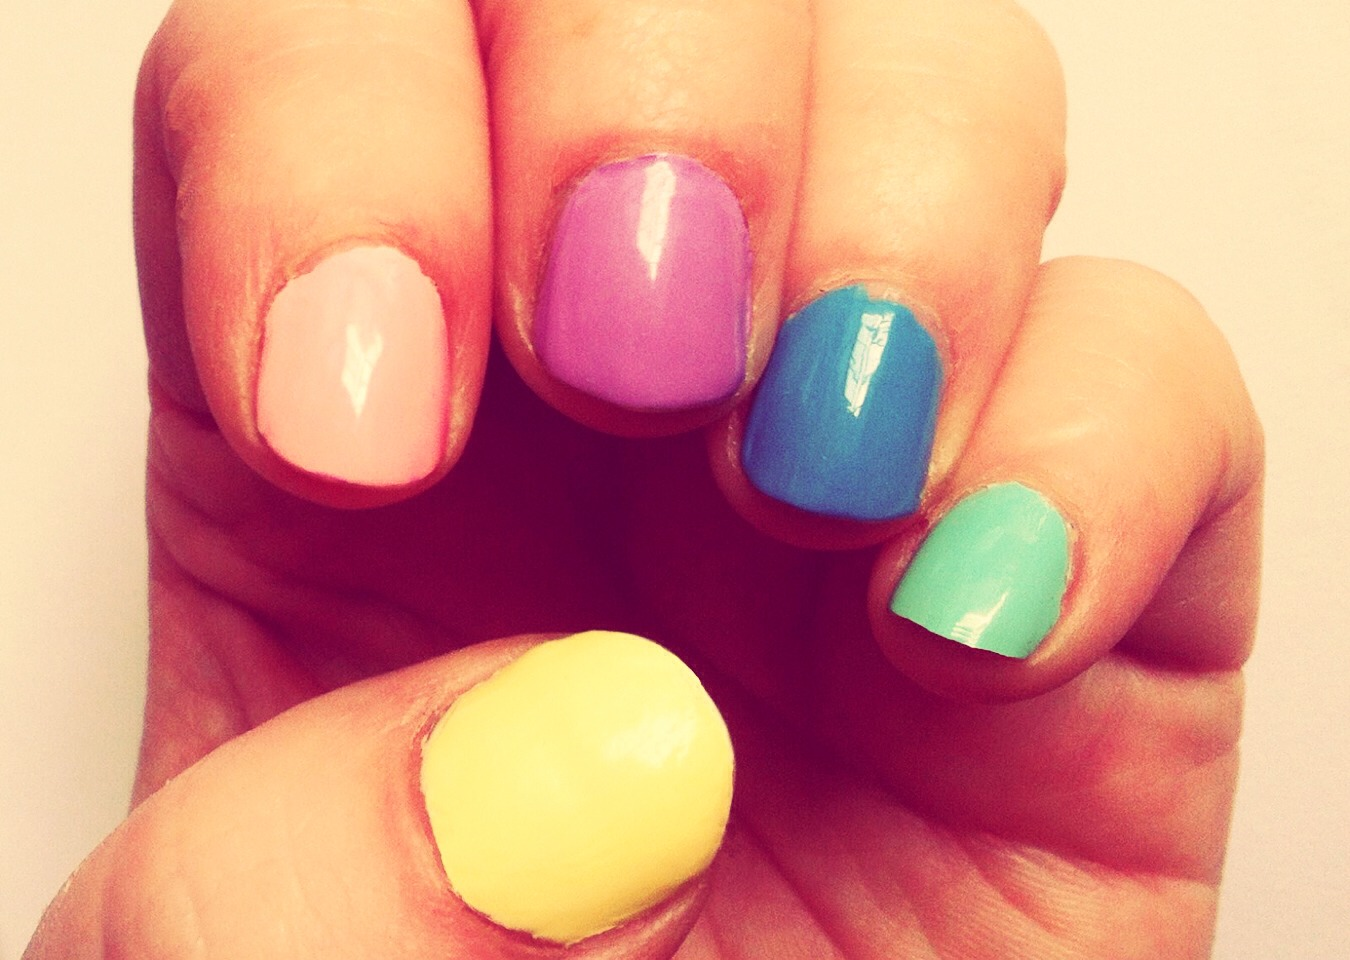 Do You Know How To Get Nail Polish Off Without Out Nail Polish